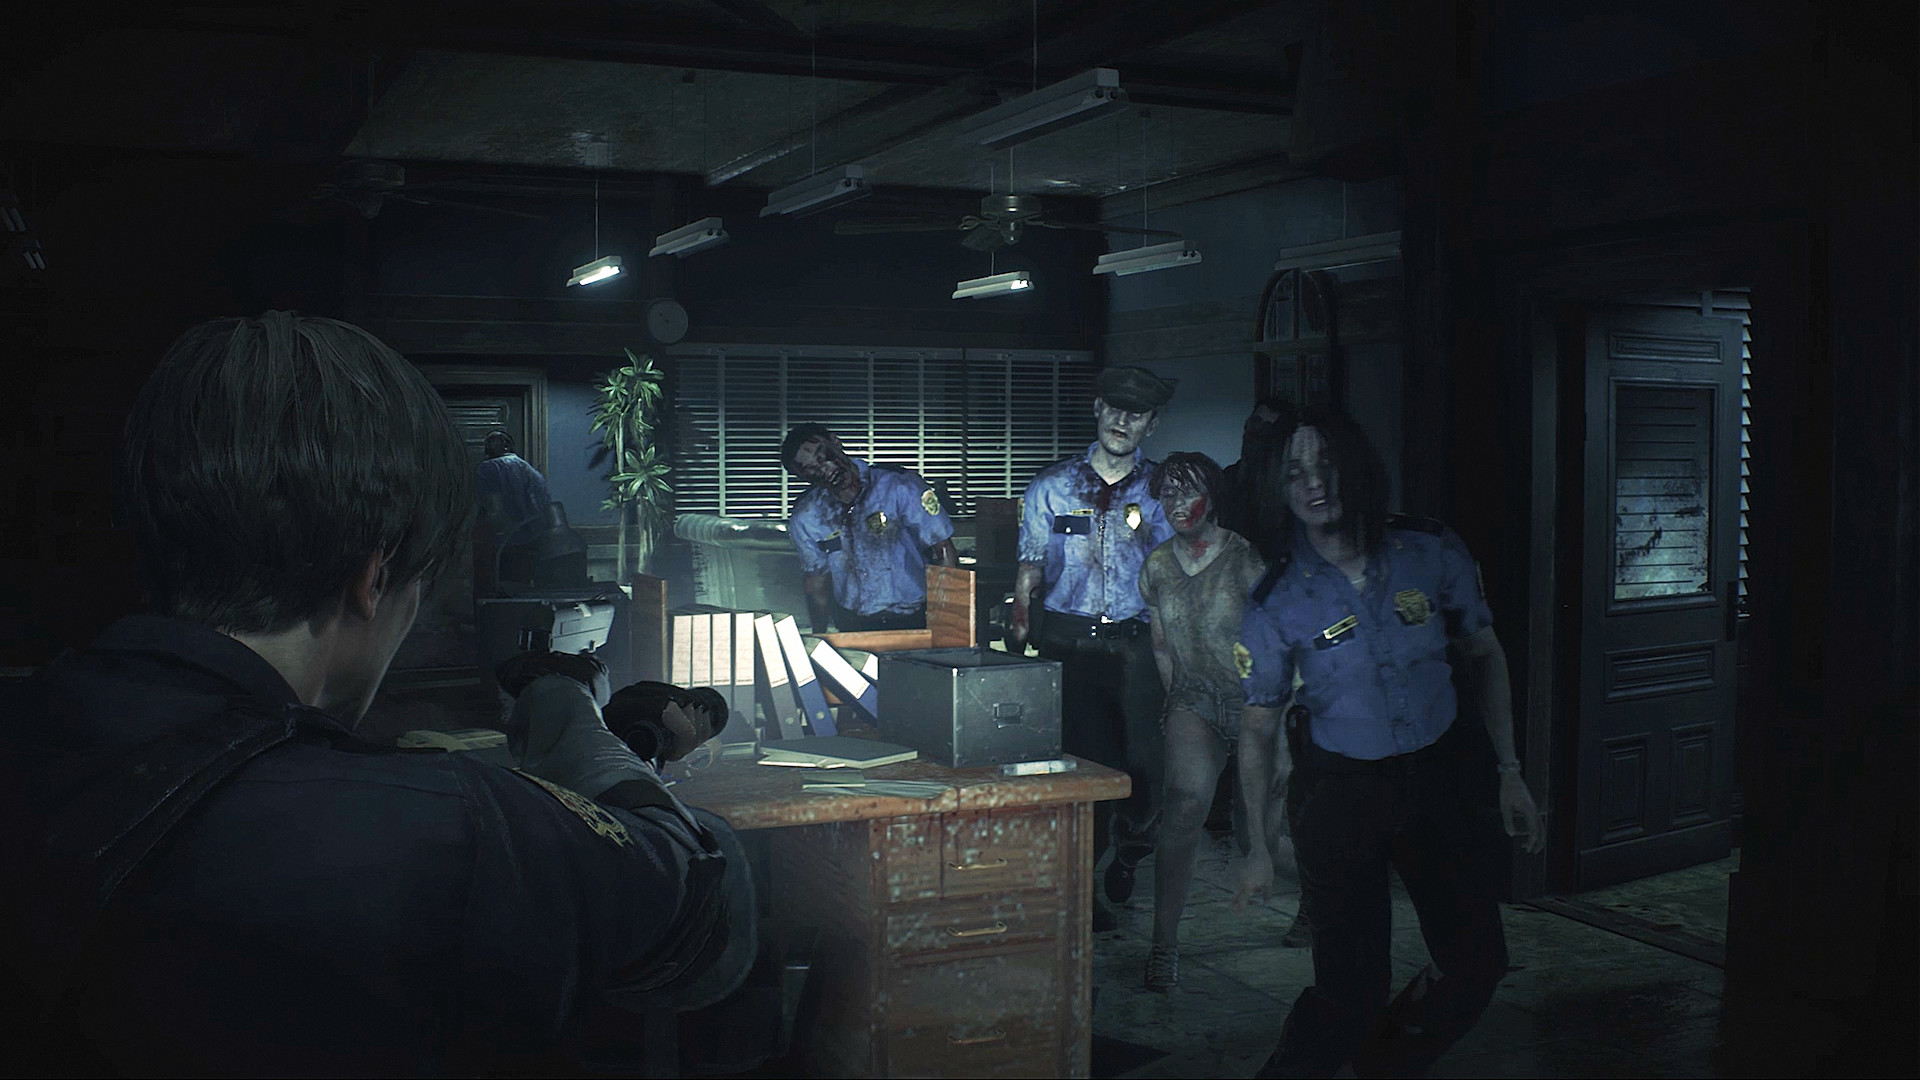 How to get safety deposit room locker keys in Resident Evil 2